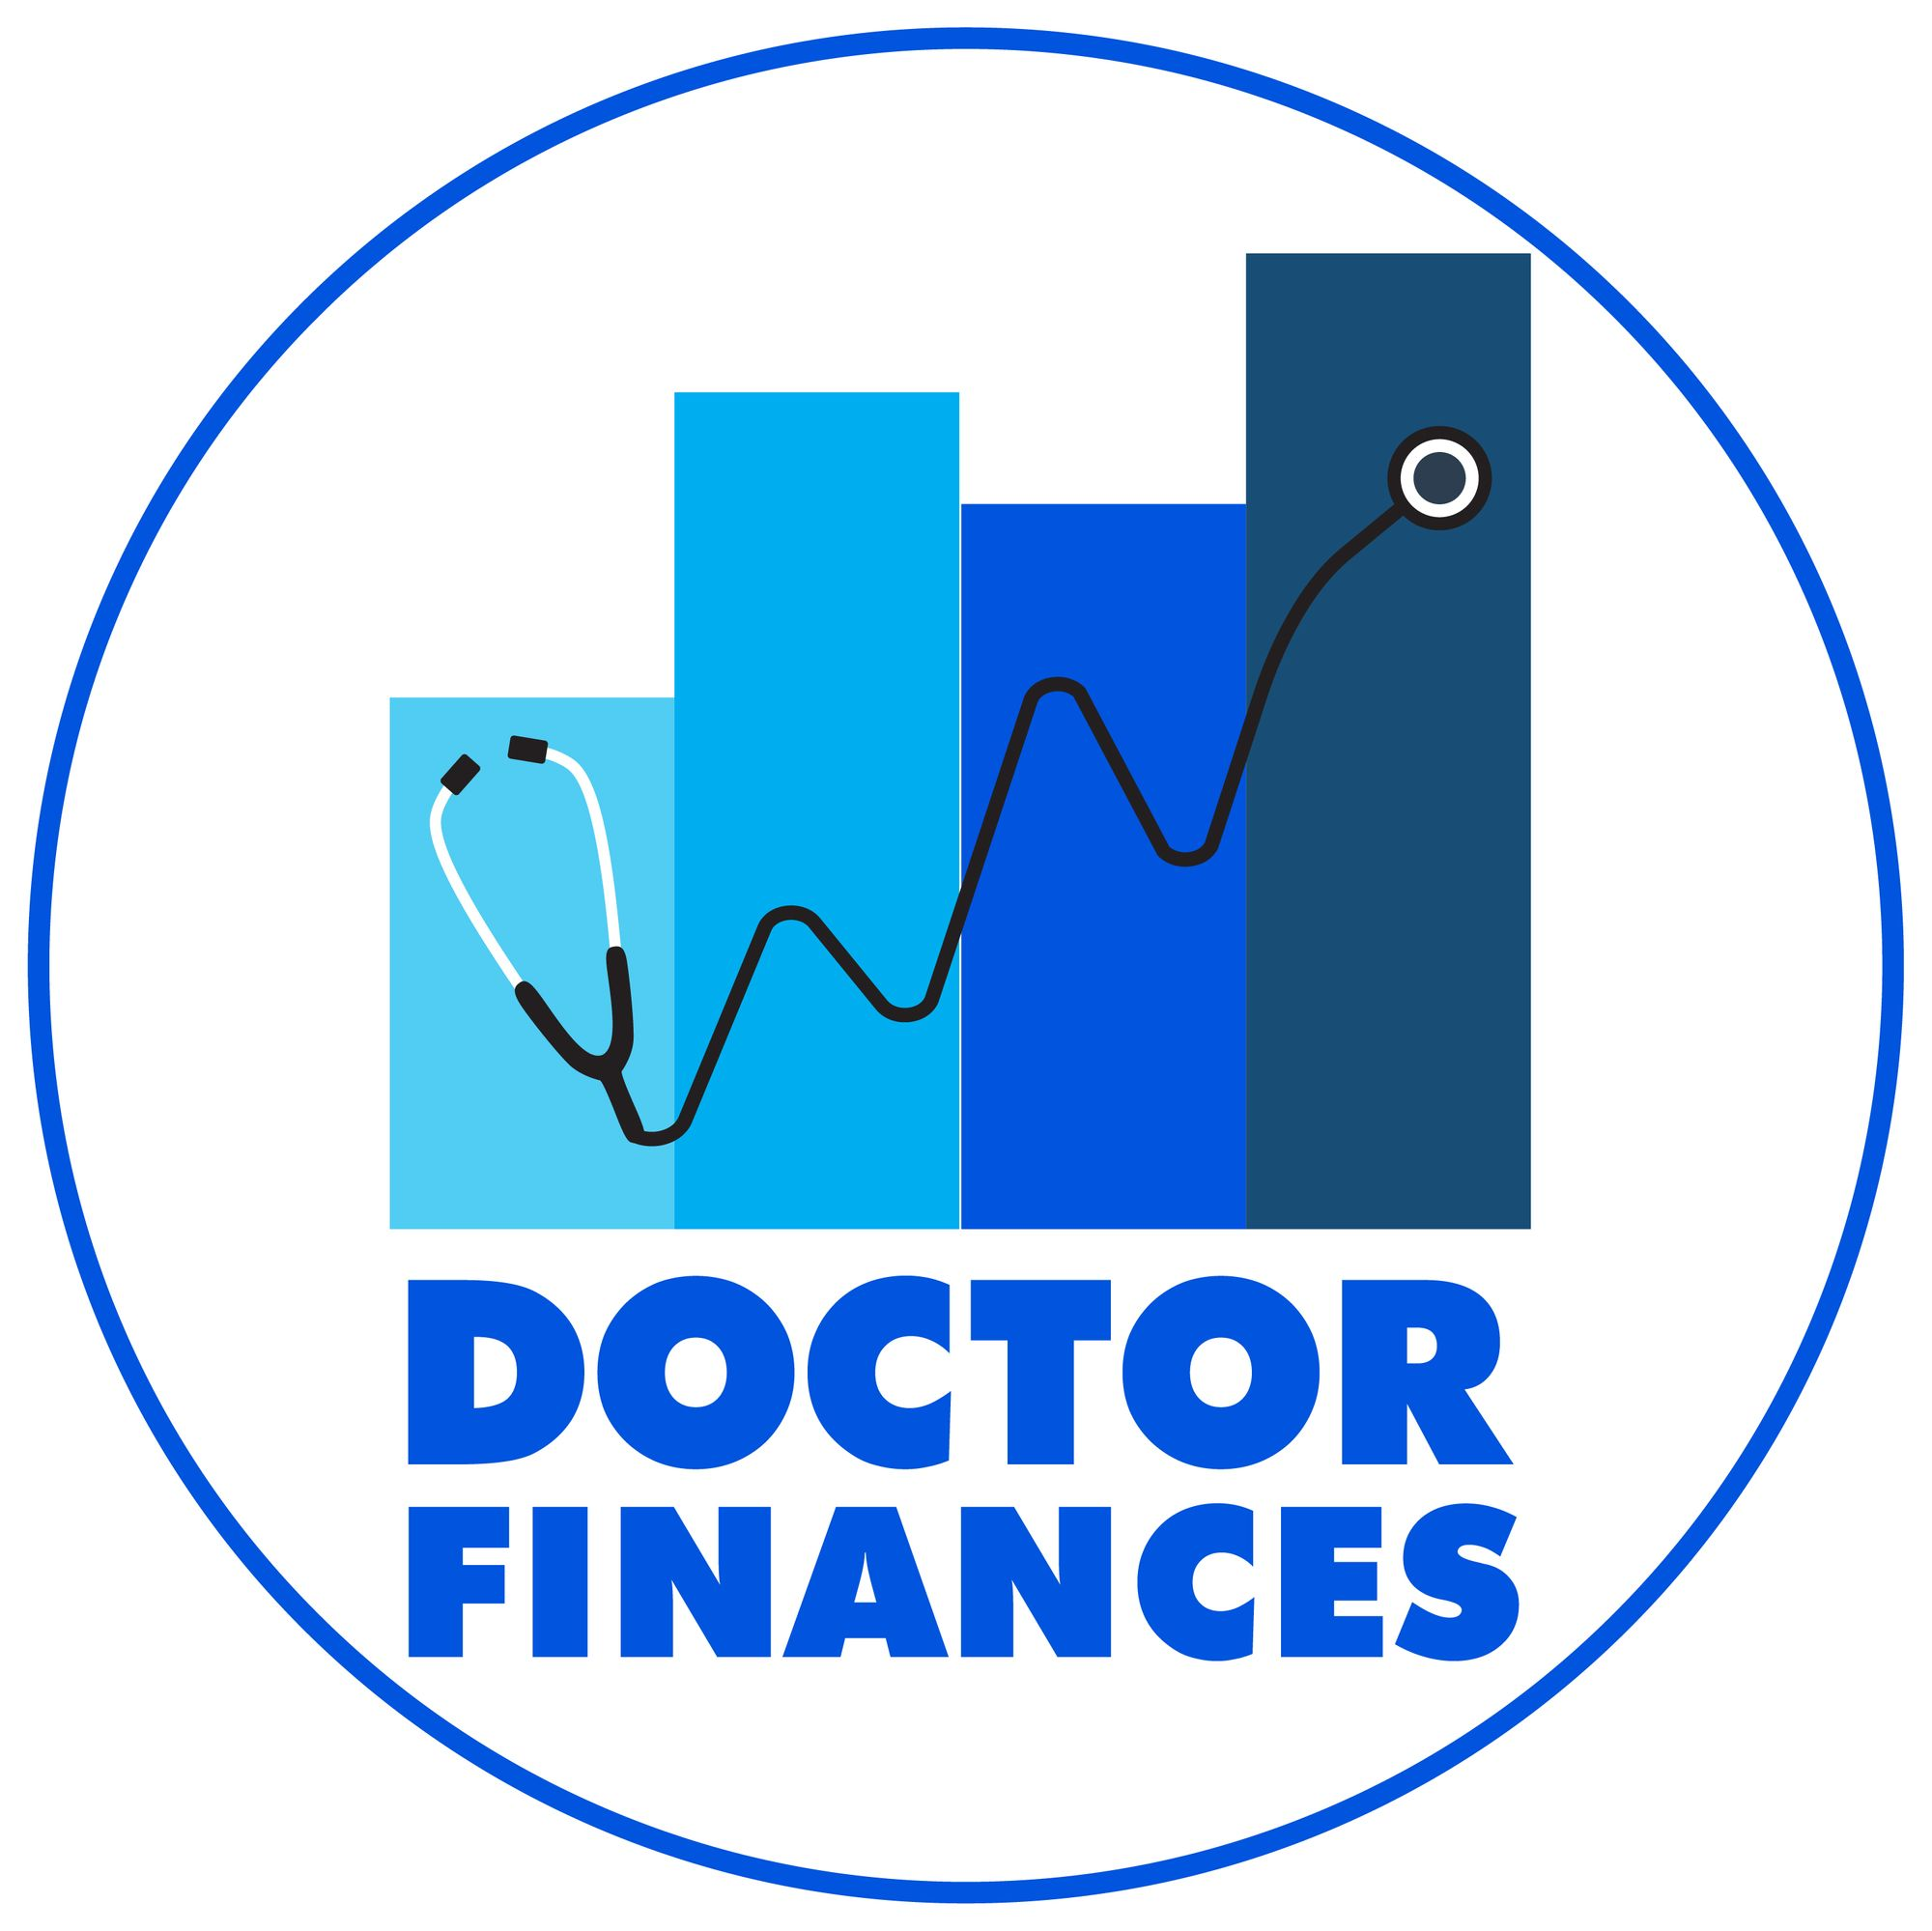 Doctor Finances